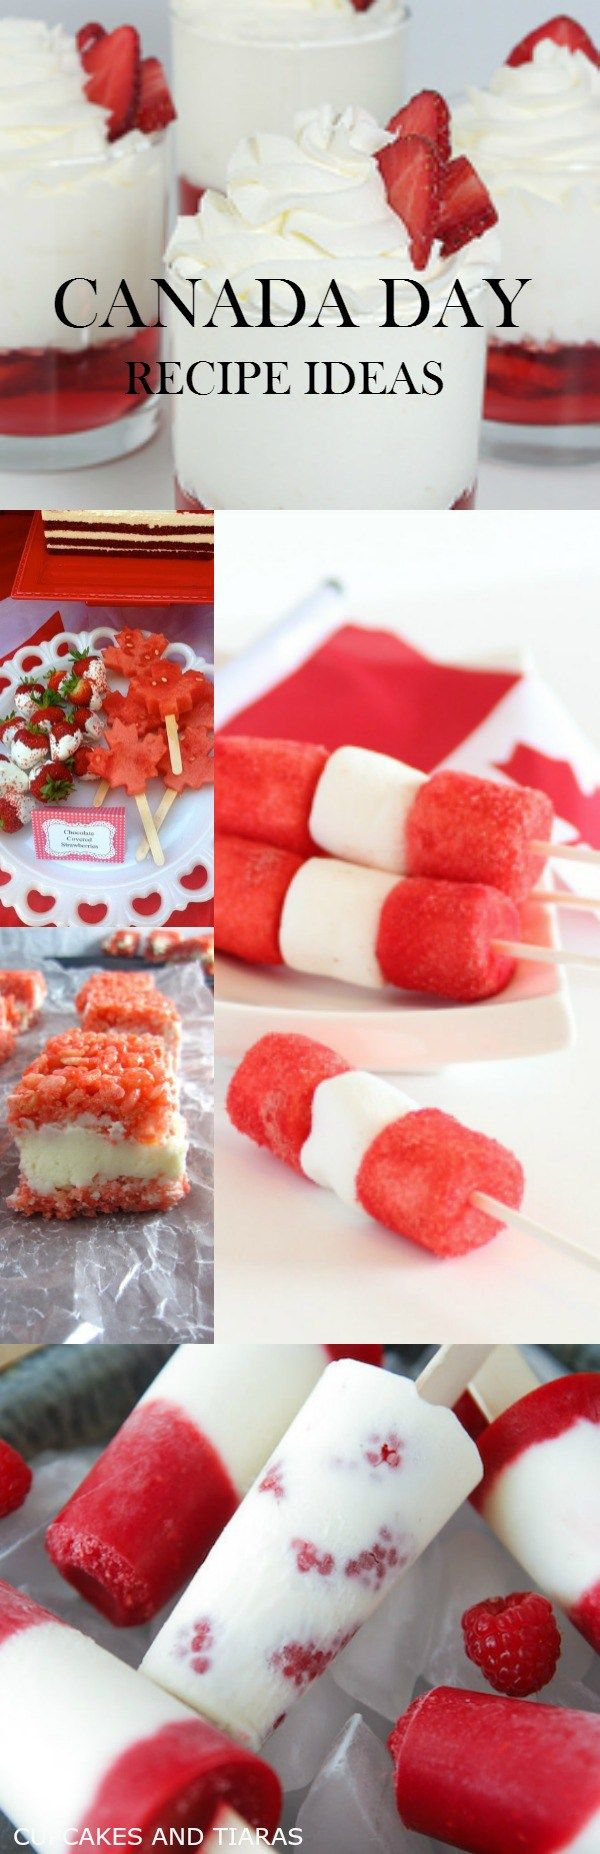 CANADA DAY RECIPE IDEAS. RED and WHITE super easy recipes that the whole family will love.